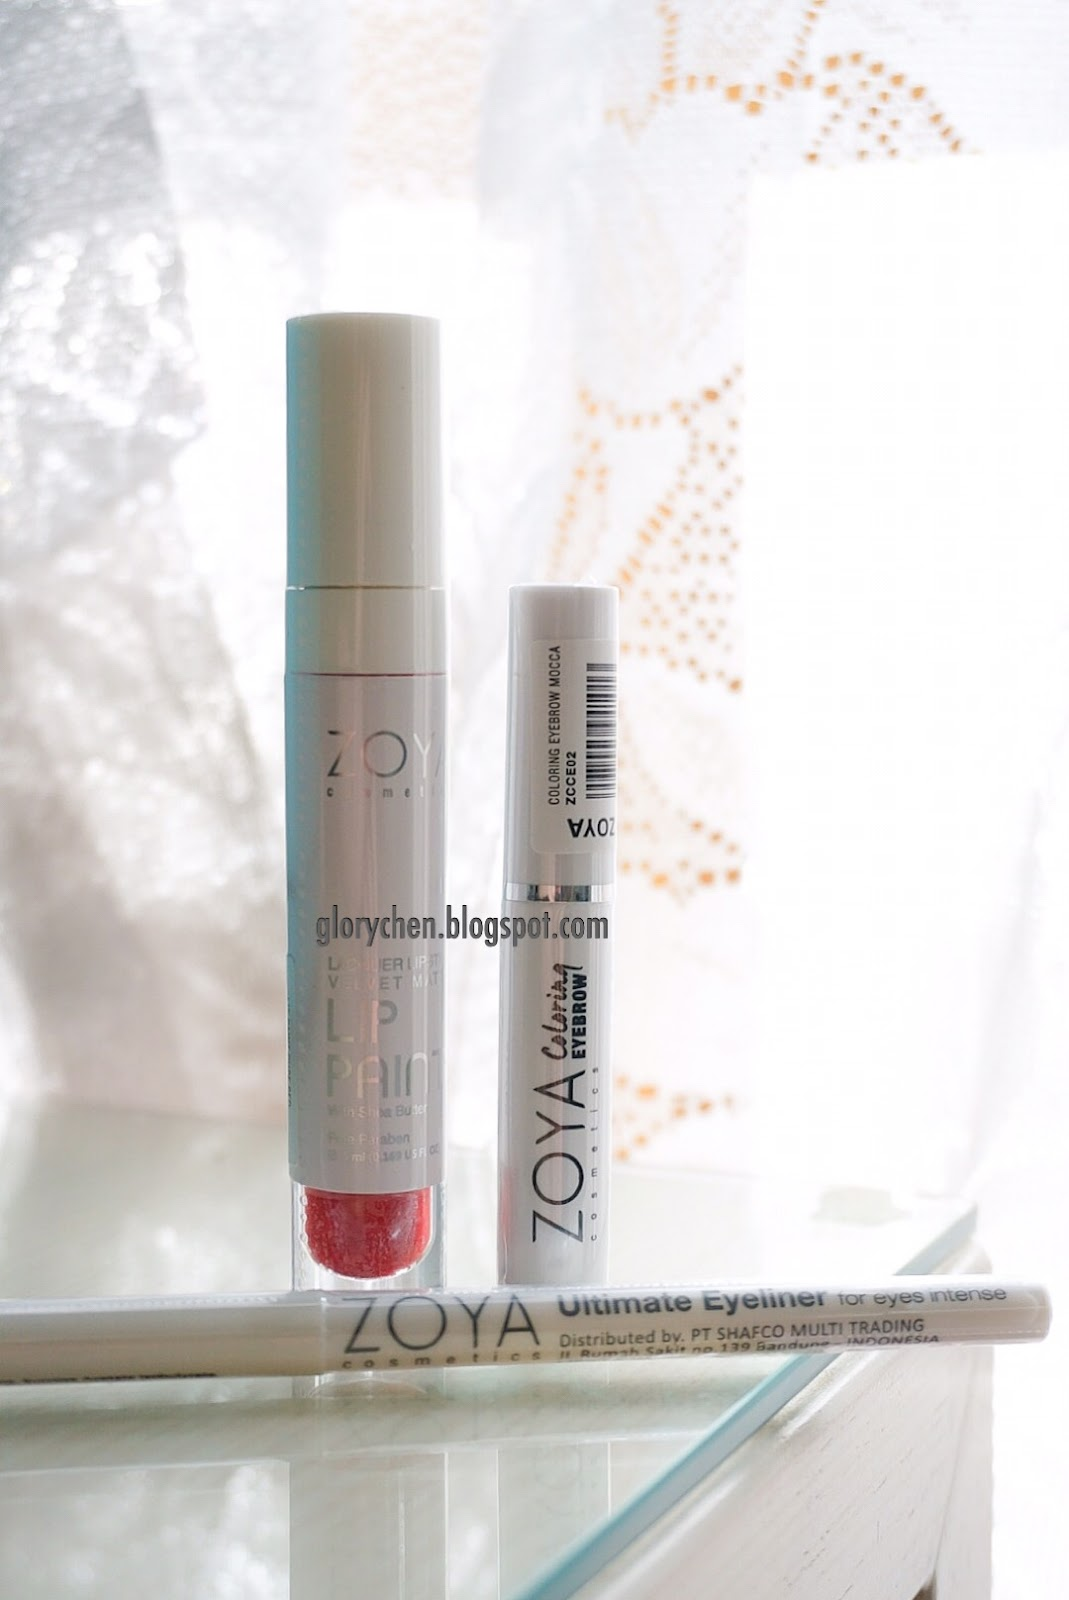 Zoya Lip Paint Pure Red Ultimate Eyeliner And Coloring Lacquer Lipstick Velvet Matte